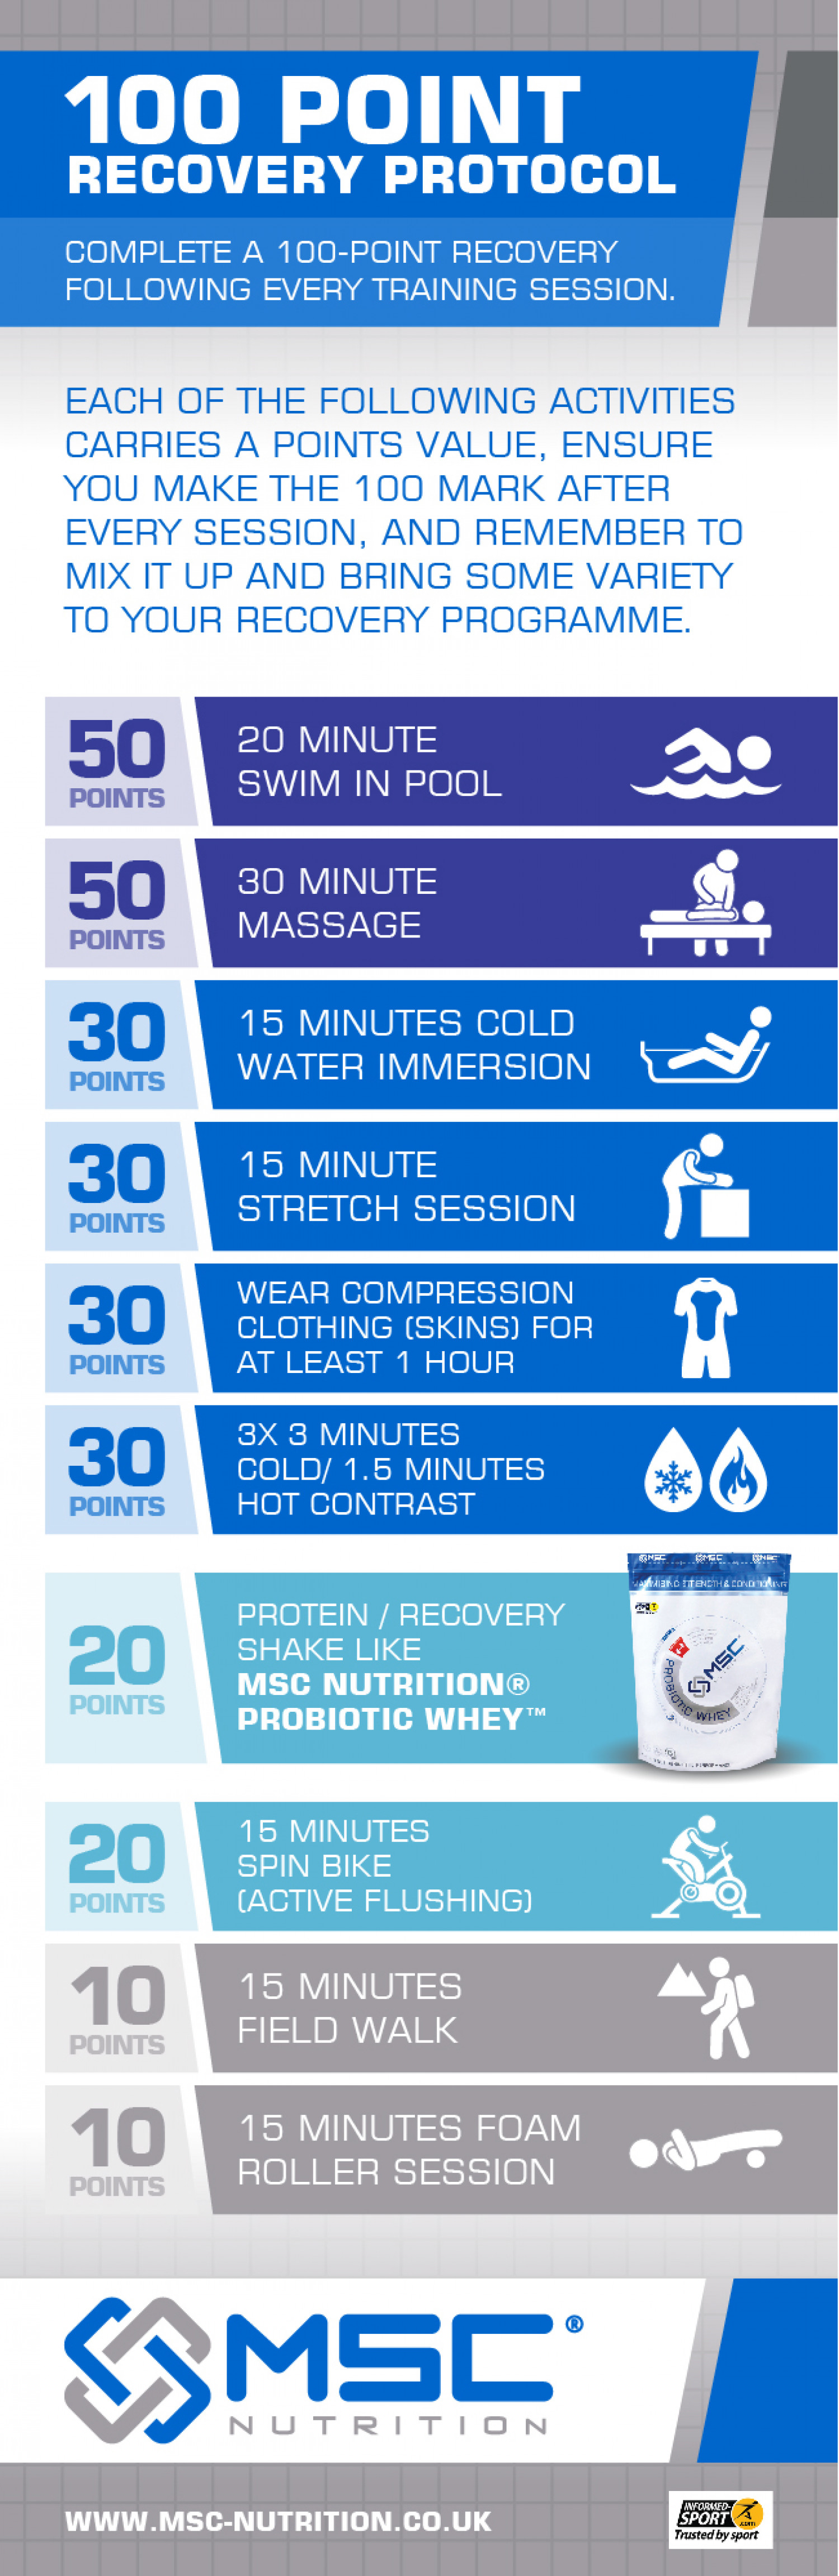 100 Point Recovery Protocol Infographic